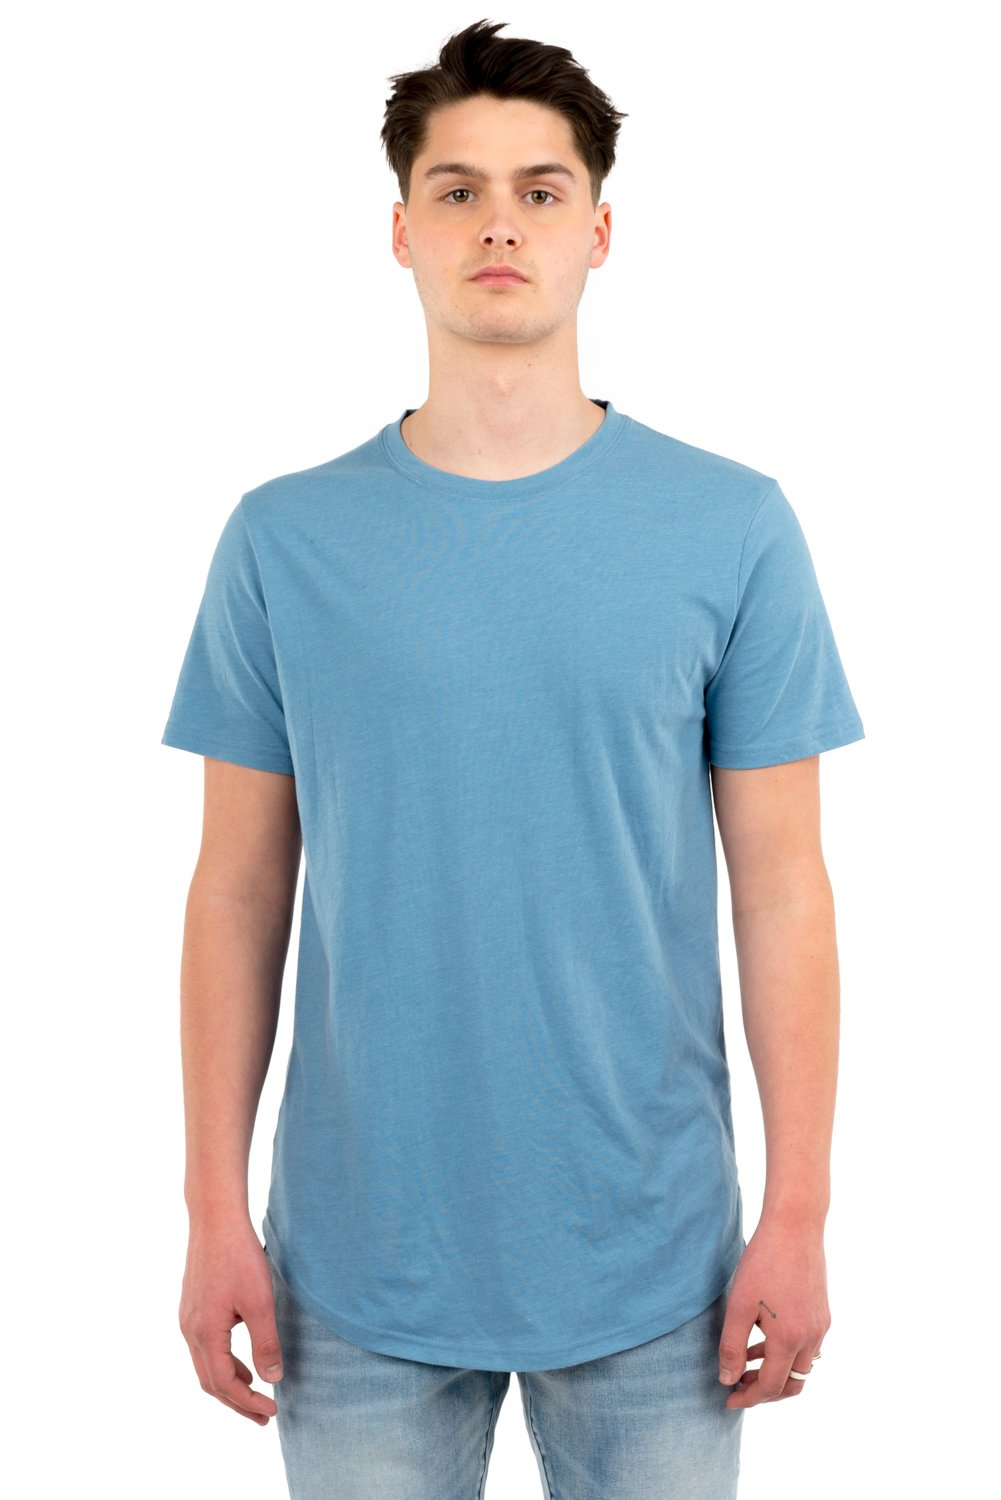 KUWALLA M'S T-SHIRTS BLUE STEEL S EAZY SCOOP TEE